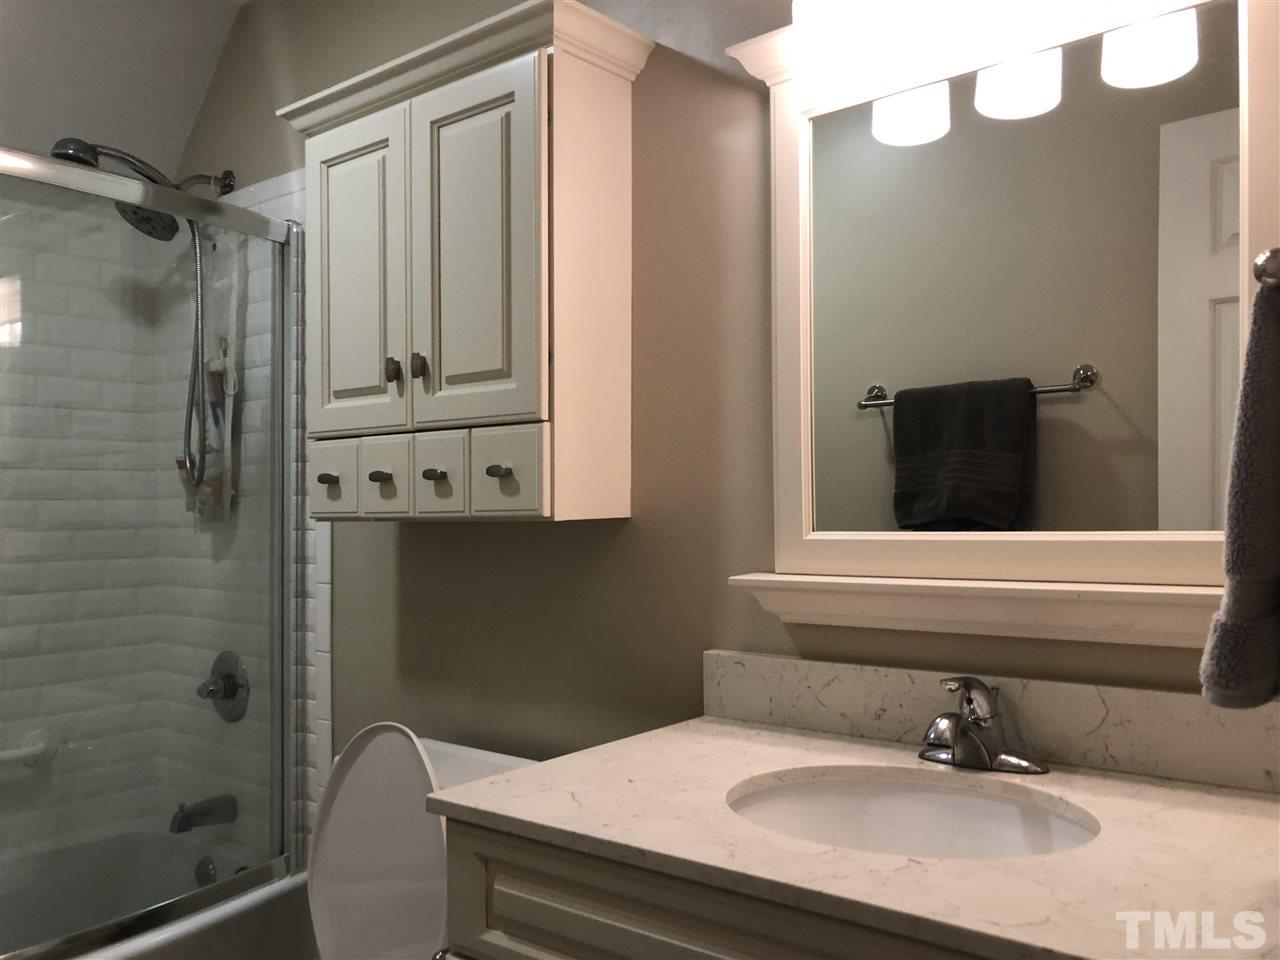 Upstairs bathroom updated with new countertop and mirror.